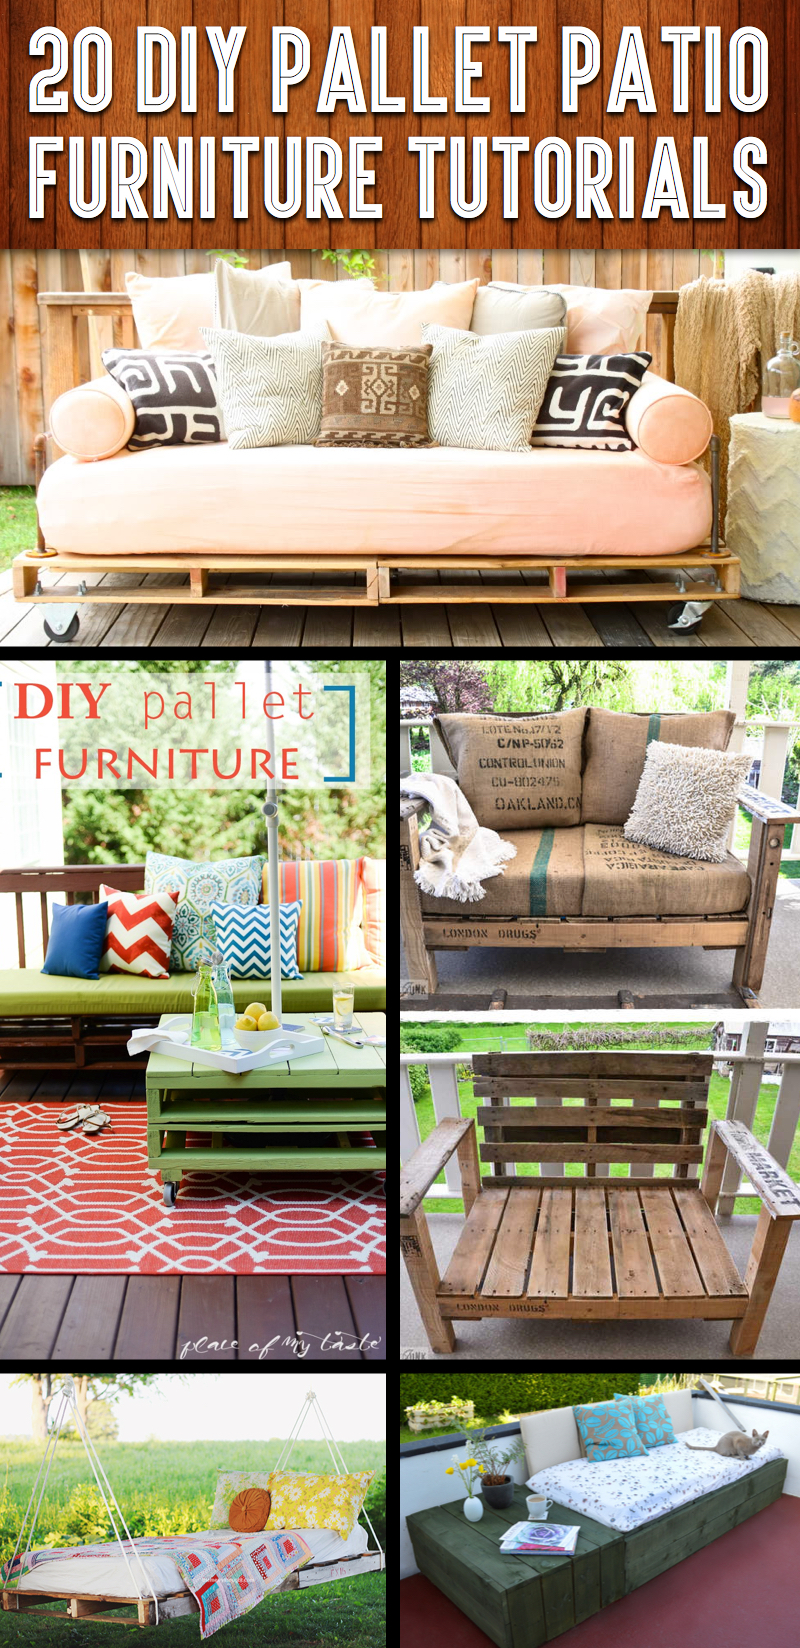 20 diy pallet patio furniture tutorials for a chic and practical 20 diy pallet patio furniture tutorials for a chic and practical outdoor patio solutioingenieria Choice Image